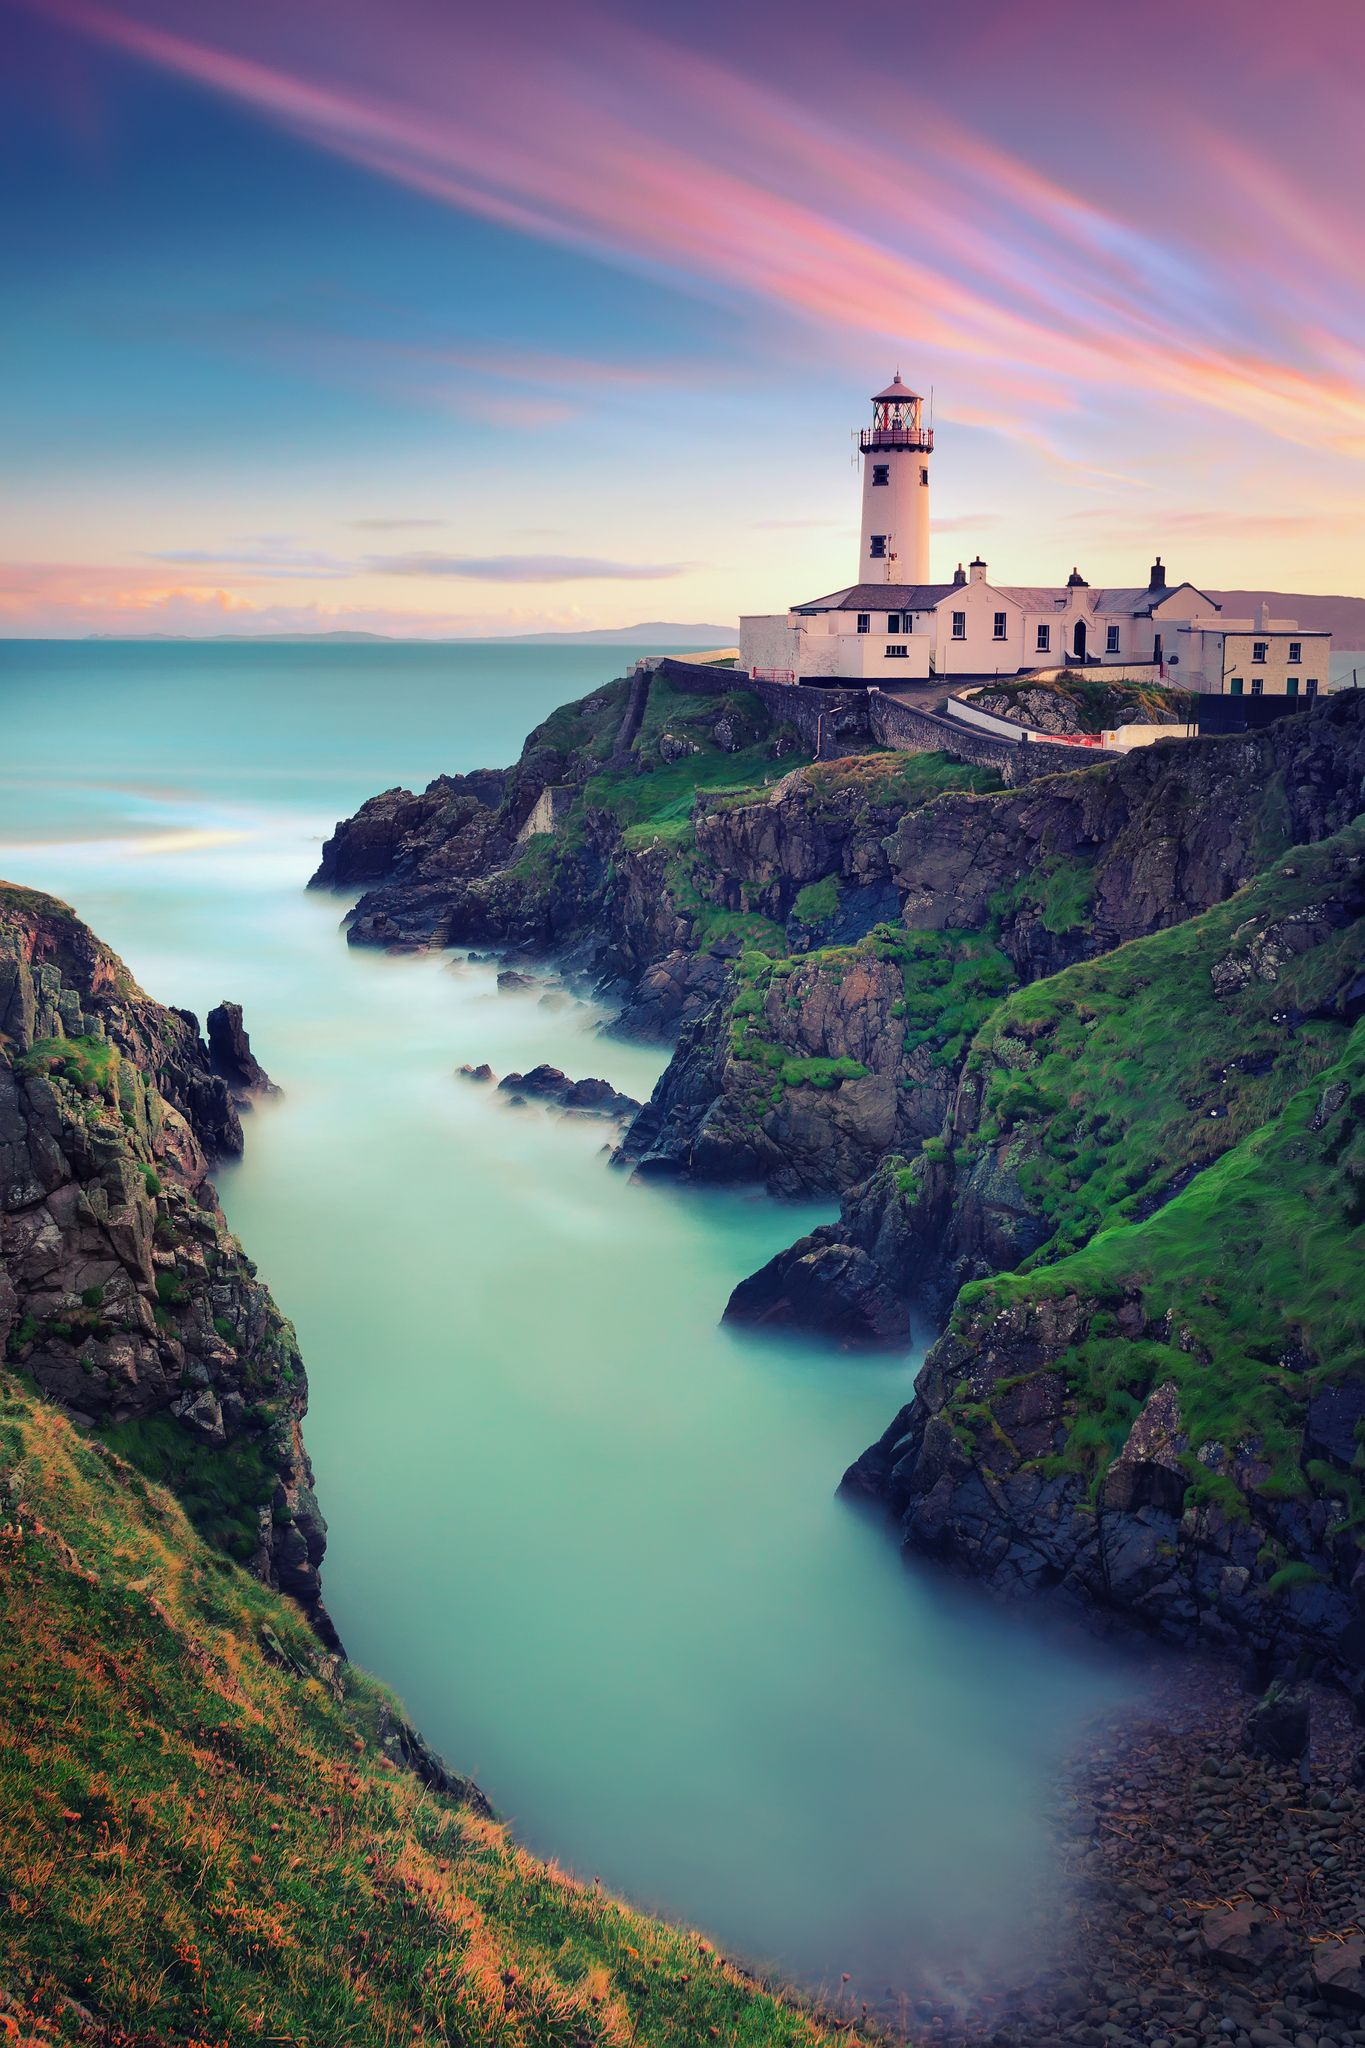 Fanand Head Lighthouse, County of Donegal, Republic of Ireland